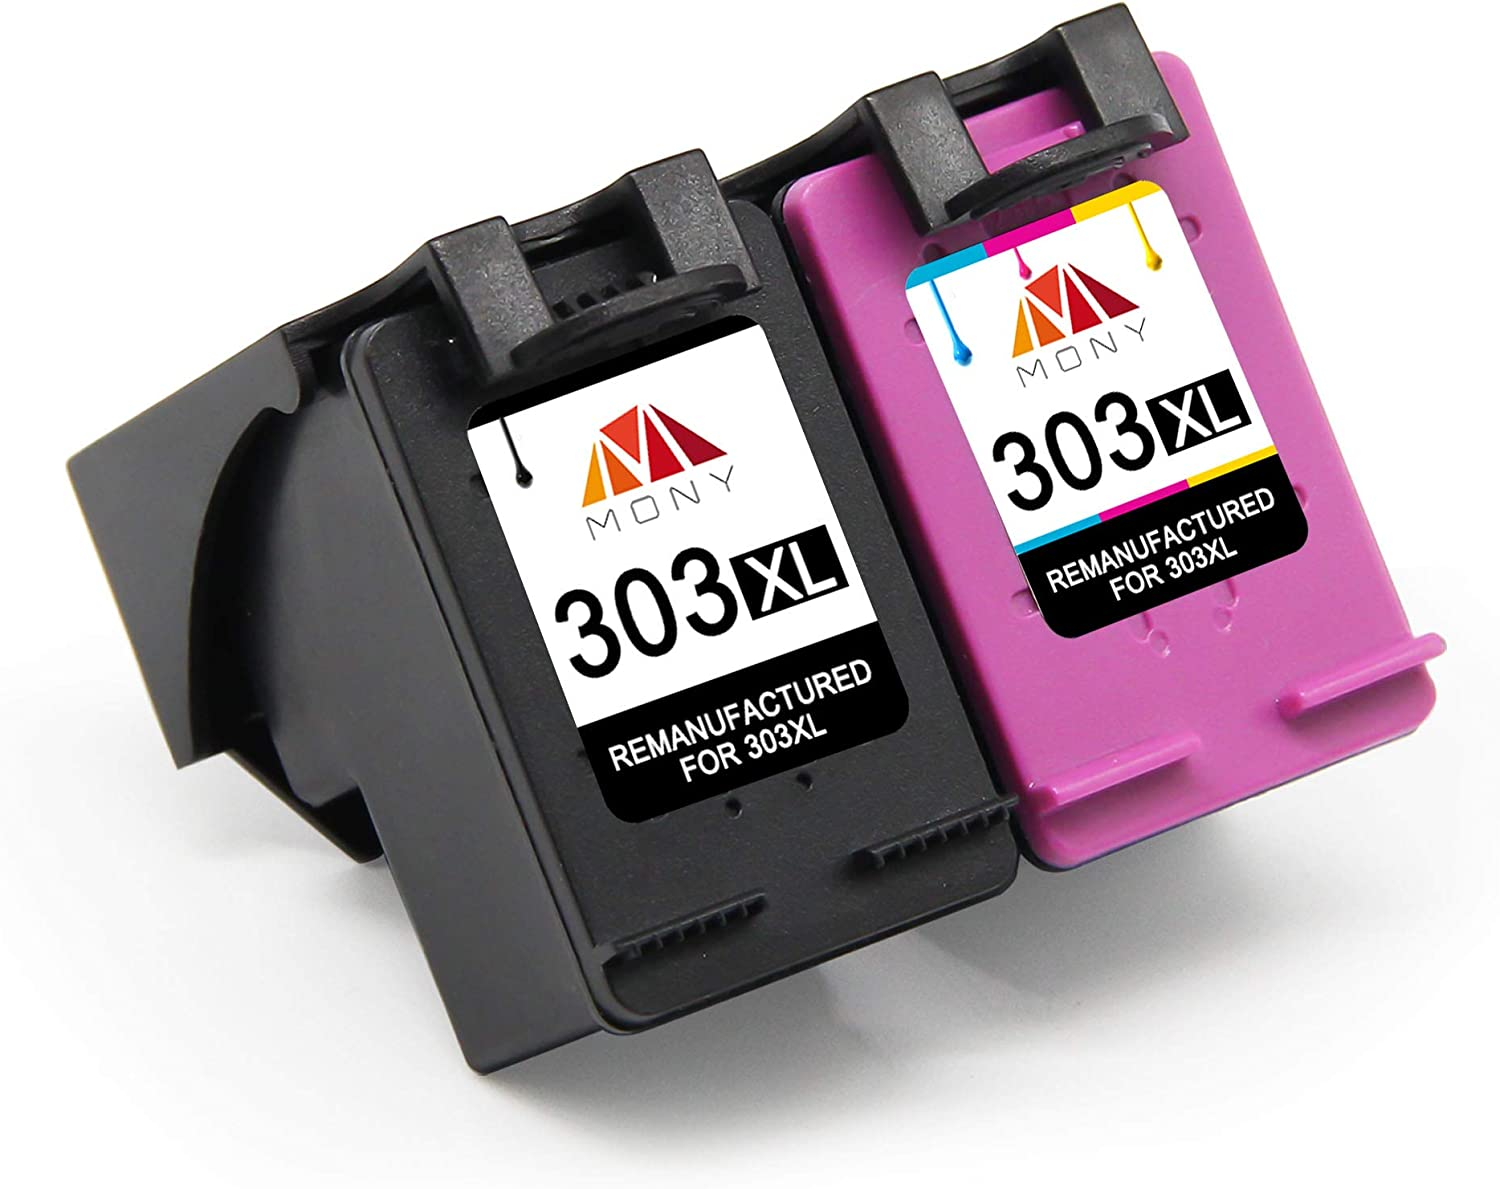 Mony Remanufactured Ink Cartridge For Hp 303 Xl 303xl Black And Tri Colour For Hp Tango Tangox Envy Photo 6230 7134 6220 7830 7130 6232 6234 Printers Pack Of 2 Bürobedarf Schreibwaren